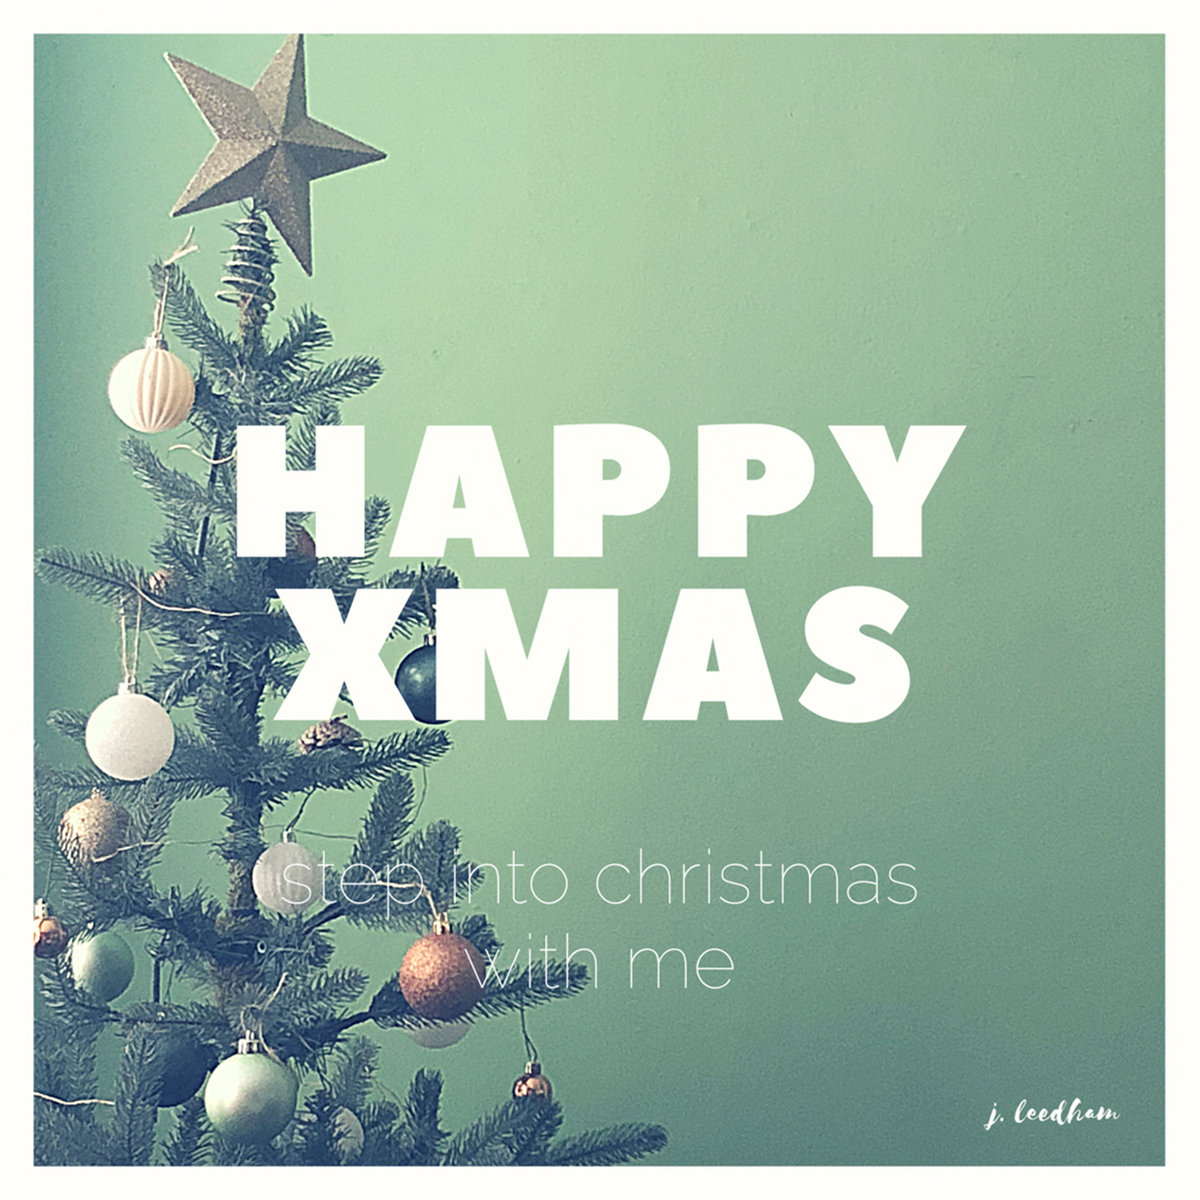 hard candy christmas from happy xmas by j leedham - Hard Candy Christmas